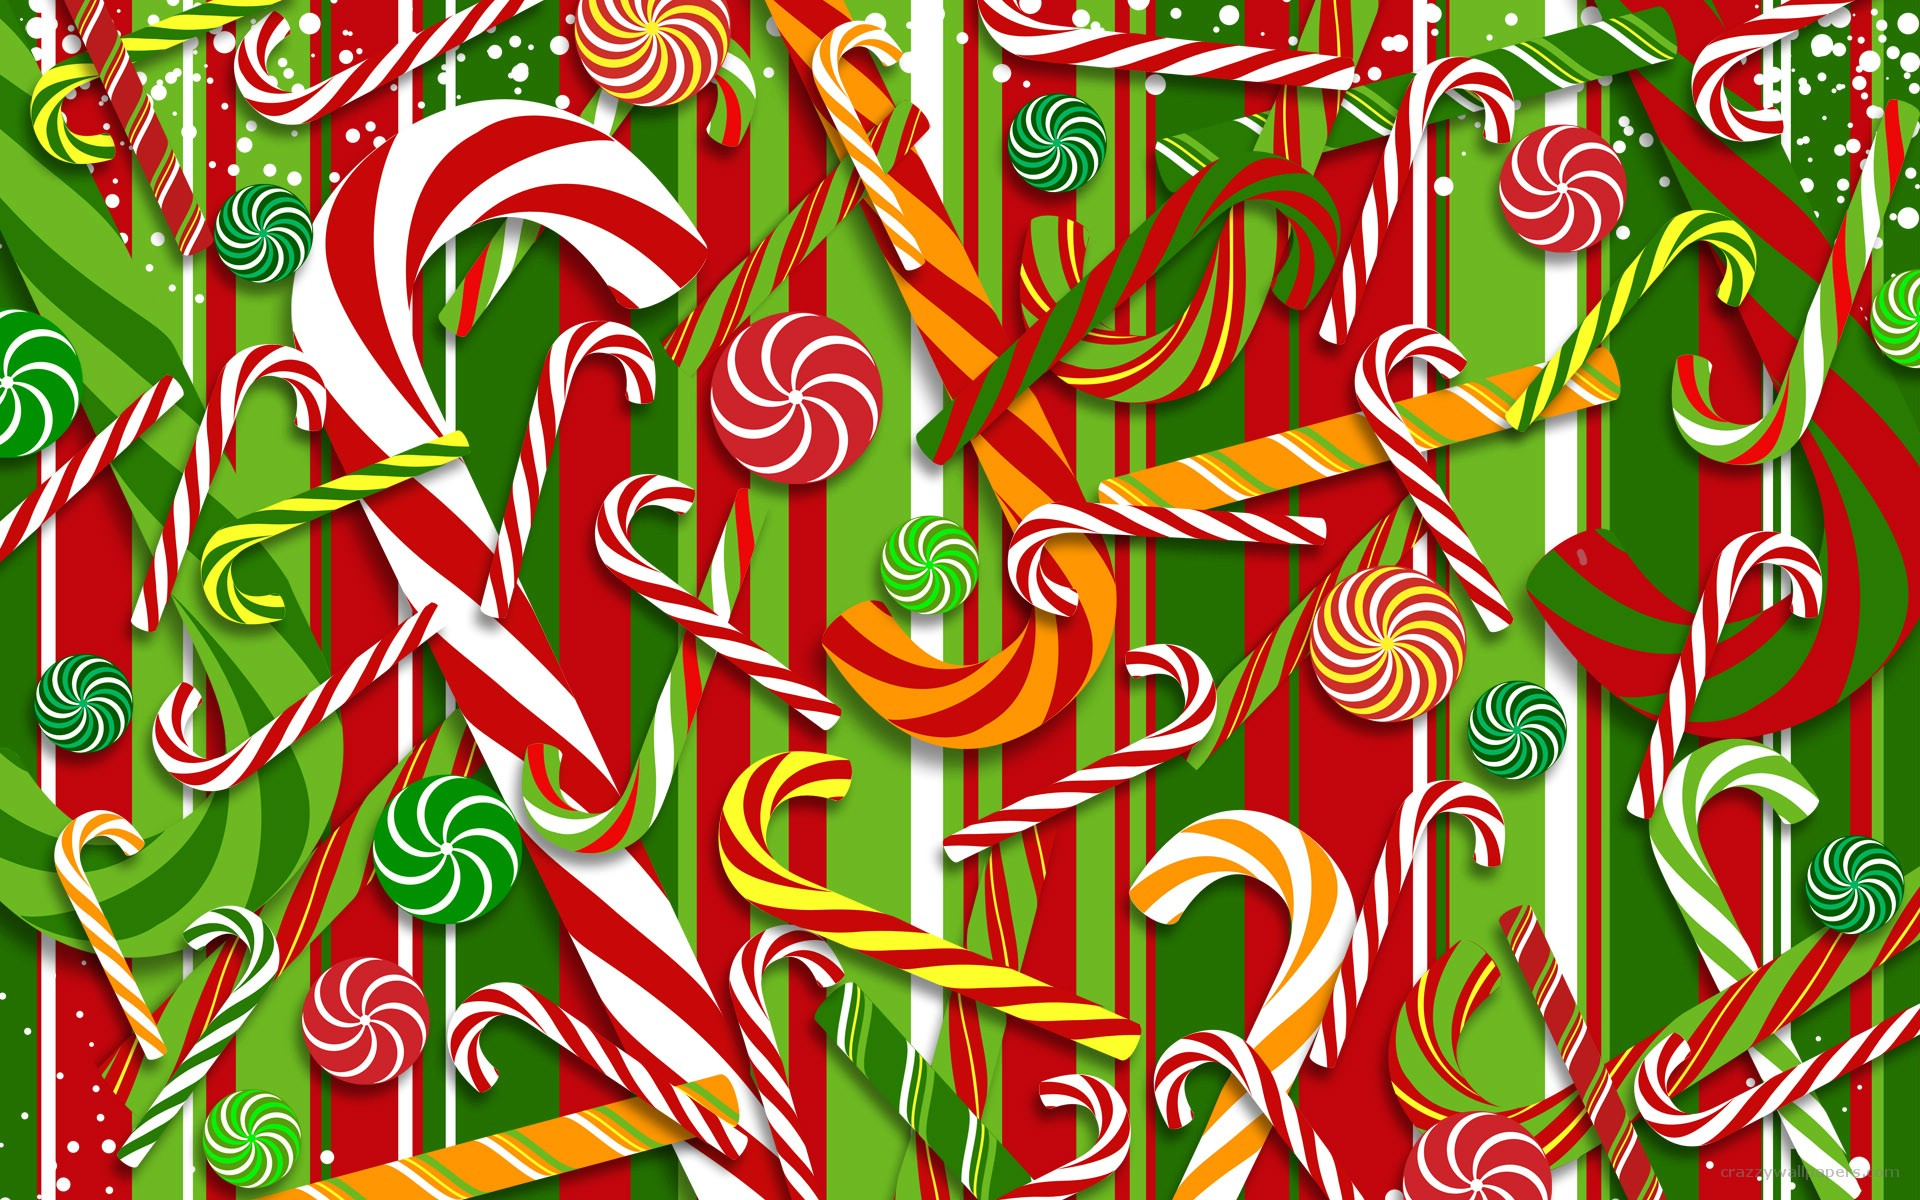 Cool Christmas Wallpaper - WallpaperSafari